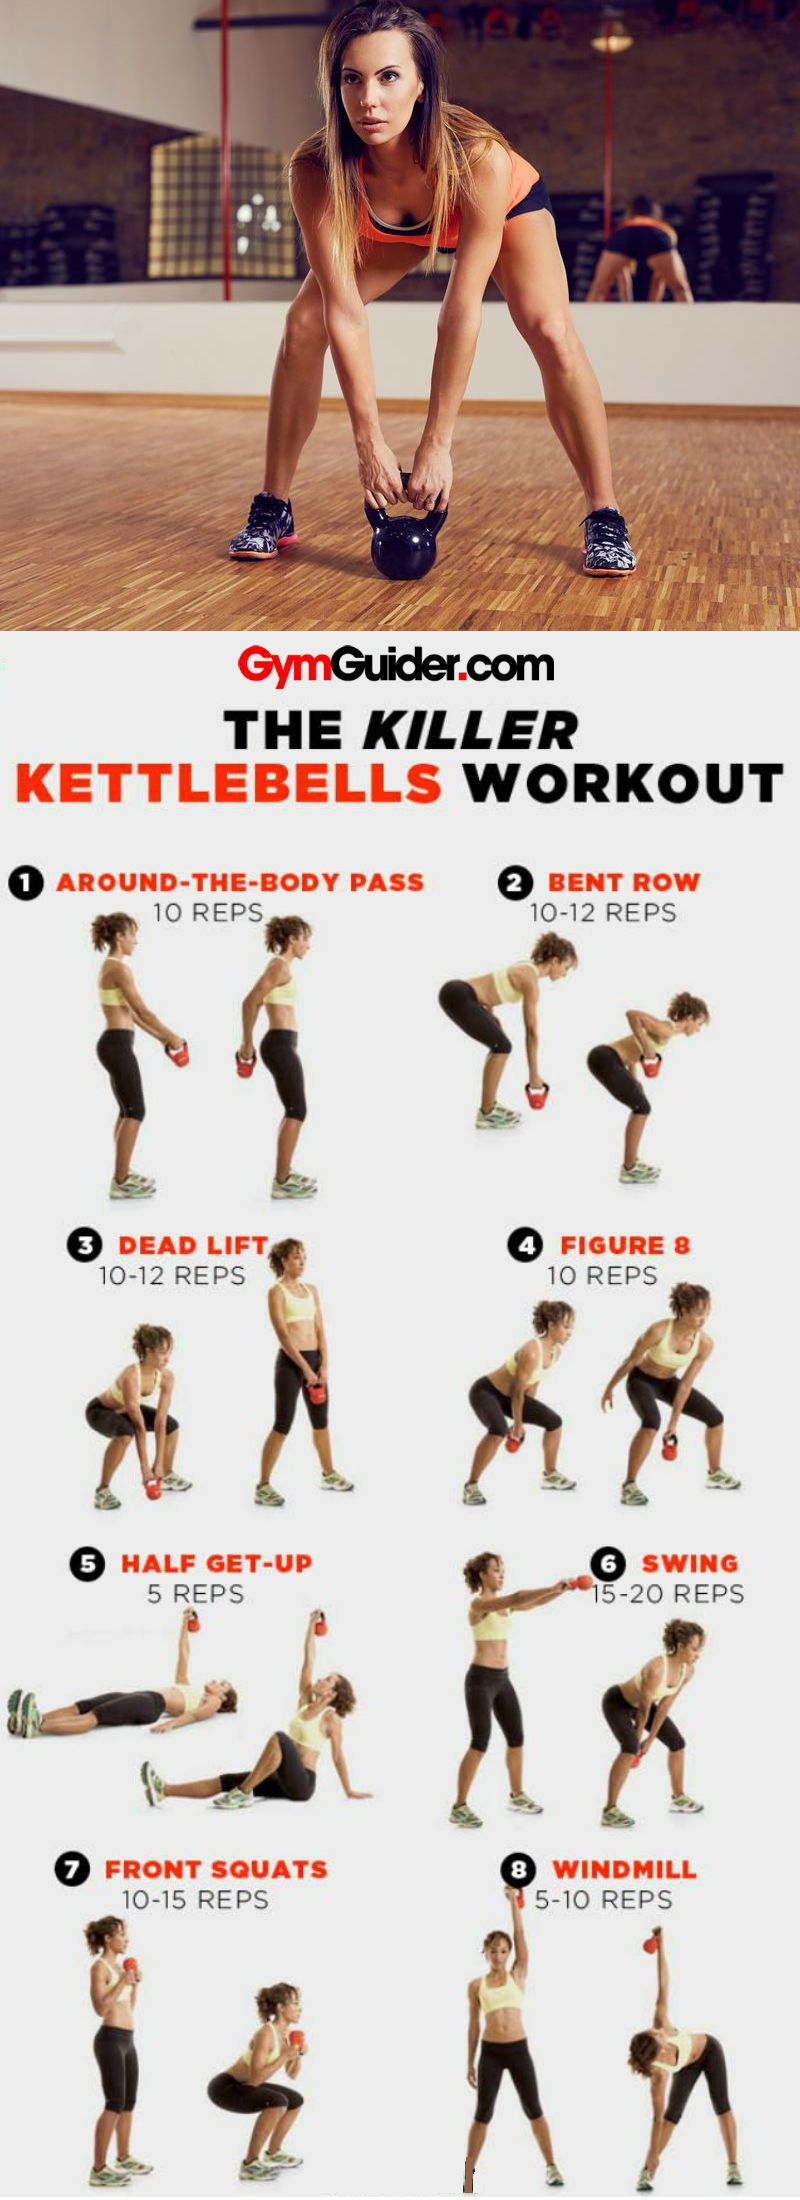 7 Most Effective Kettlebell Exercises for Toned Arms and Back - GymGuider.com